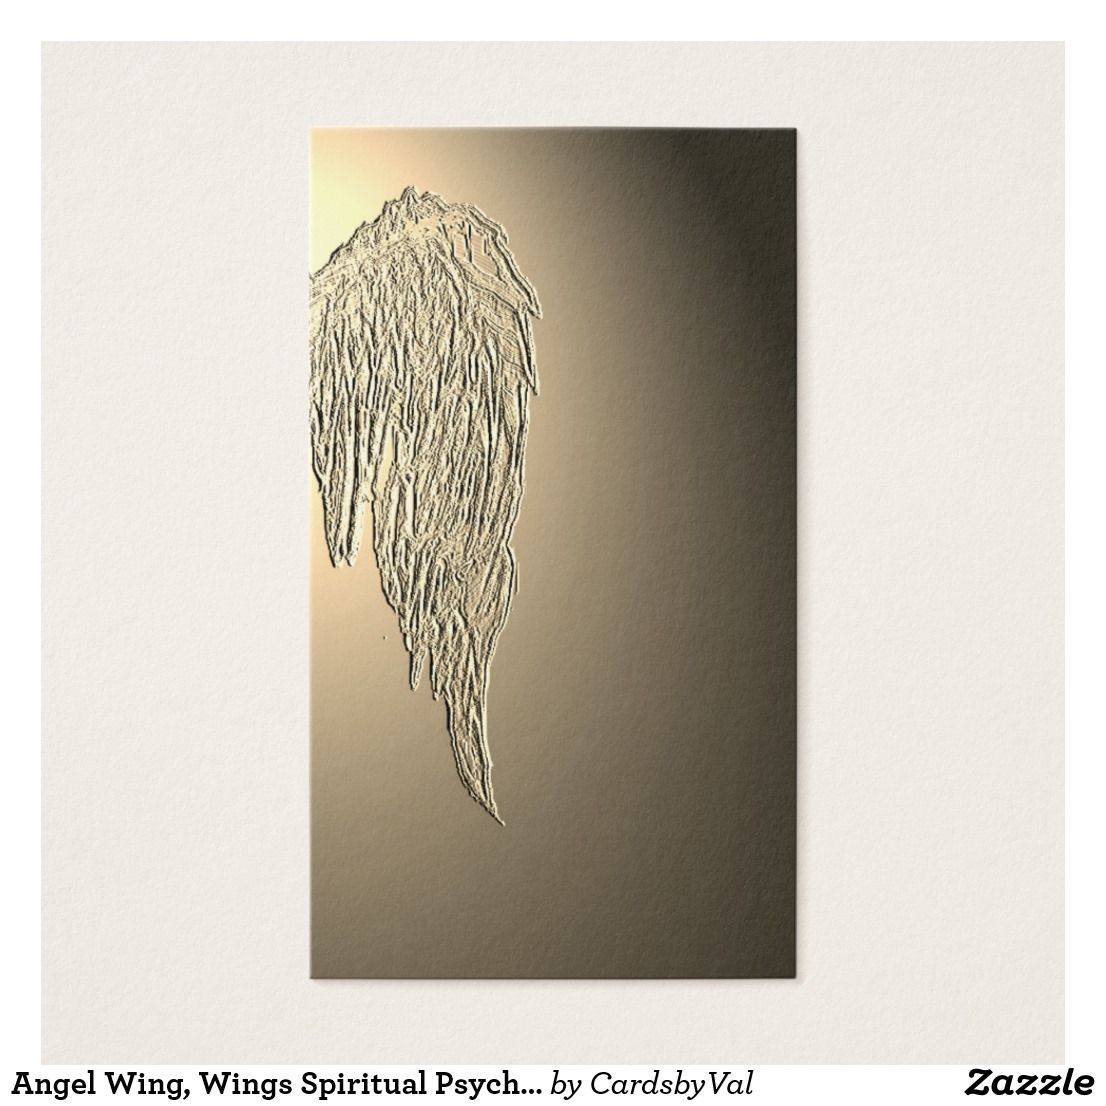 Angel Wing, Wings Spiritual Psychic Business Cards | Business Cards ...